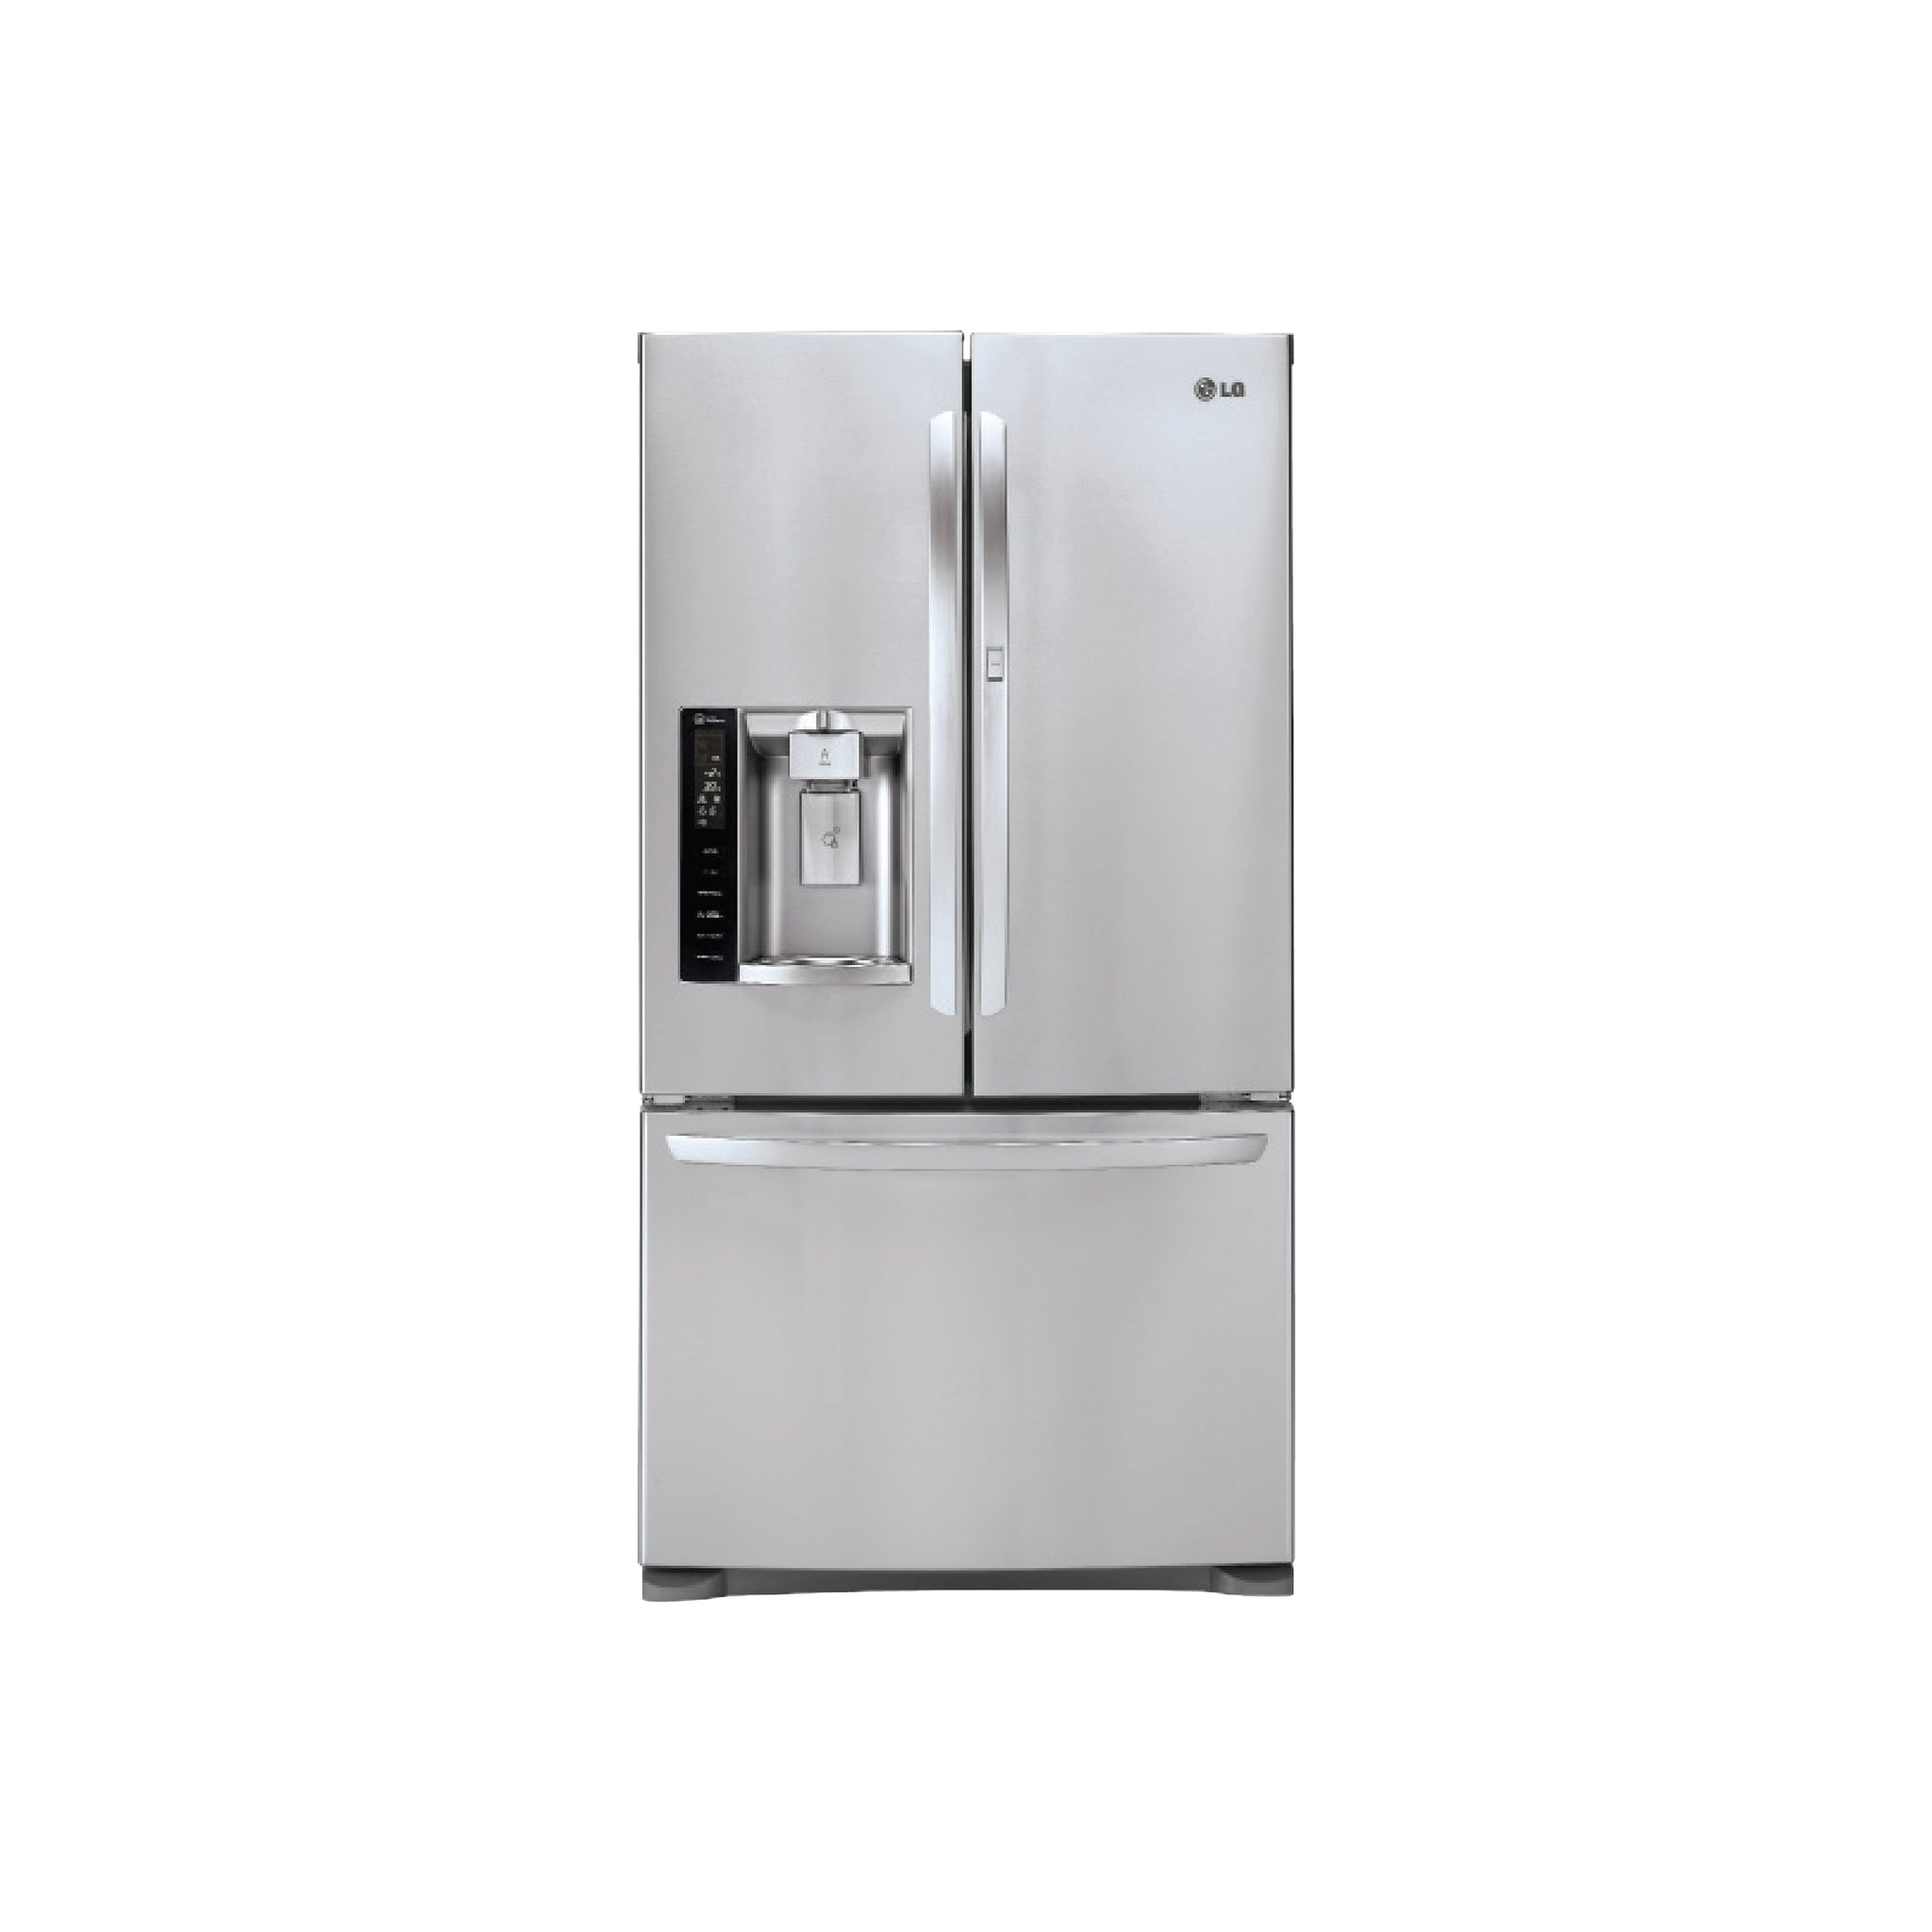 LG 27cu.ft. Ultra-Capacity 3 Door French Door Refrigerator w/ Door-in-Door, Shipping (To be added shipping separately)